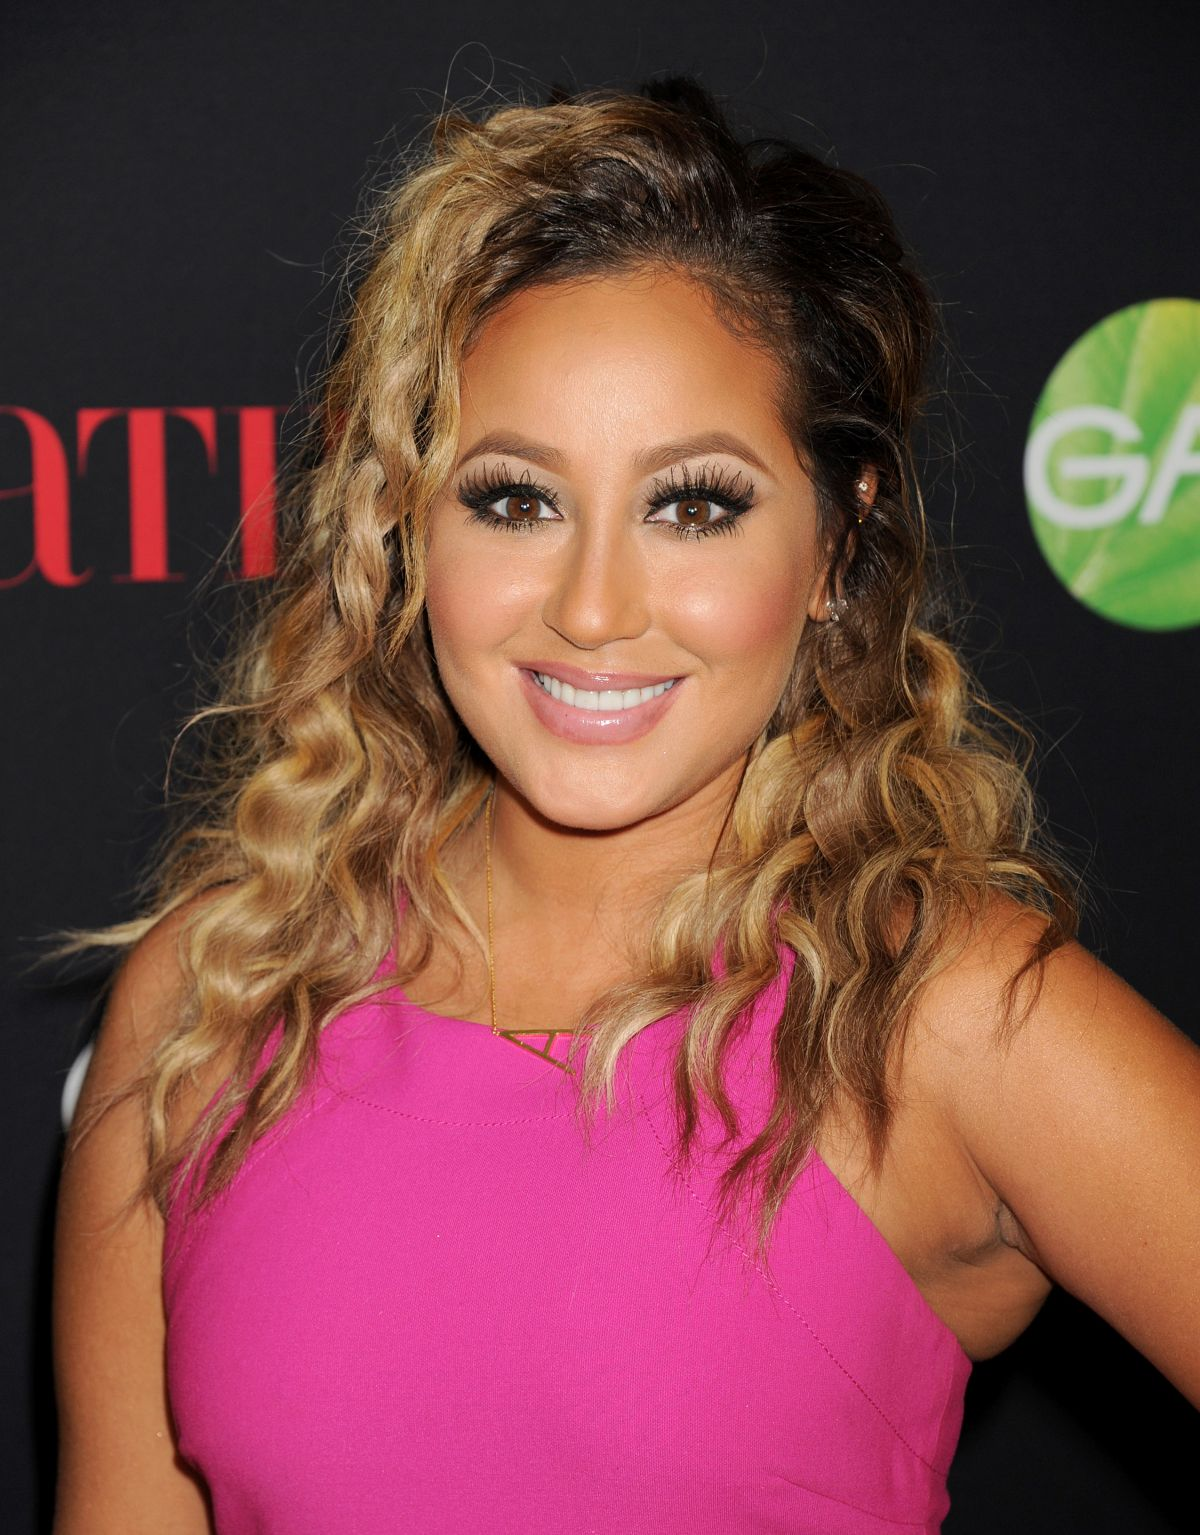 ADRIENNE BAILON at Latina Magazine's 30 Under 30 Party in West Hollywood